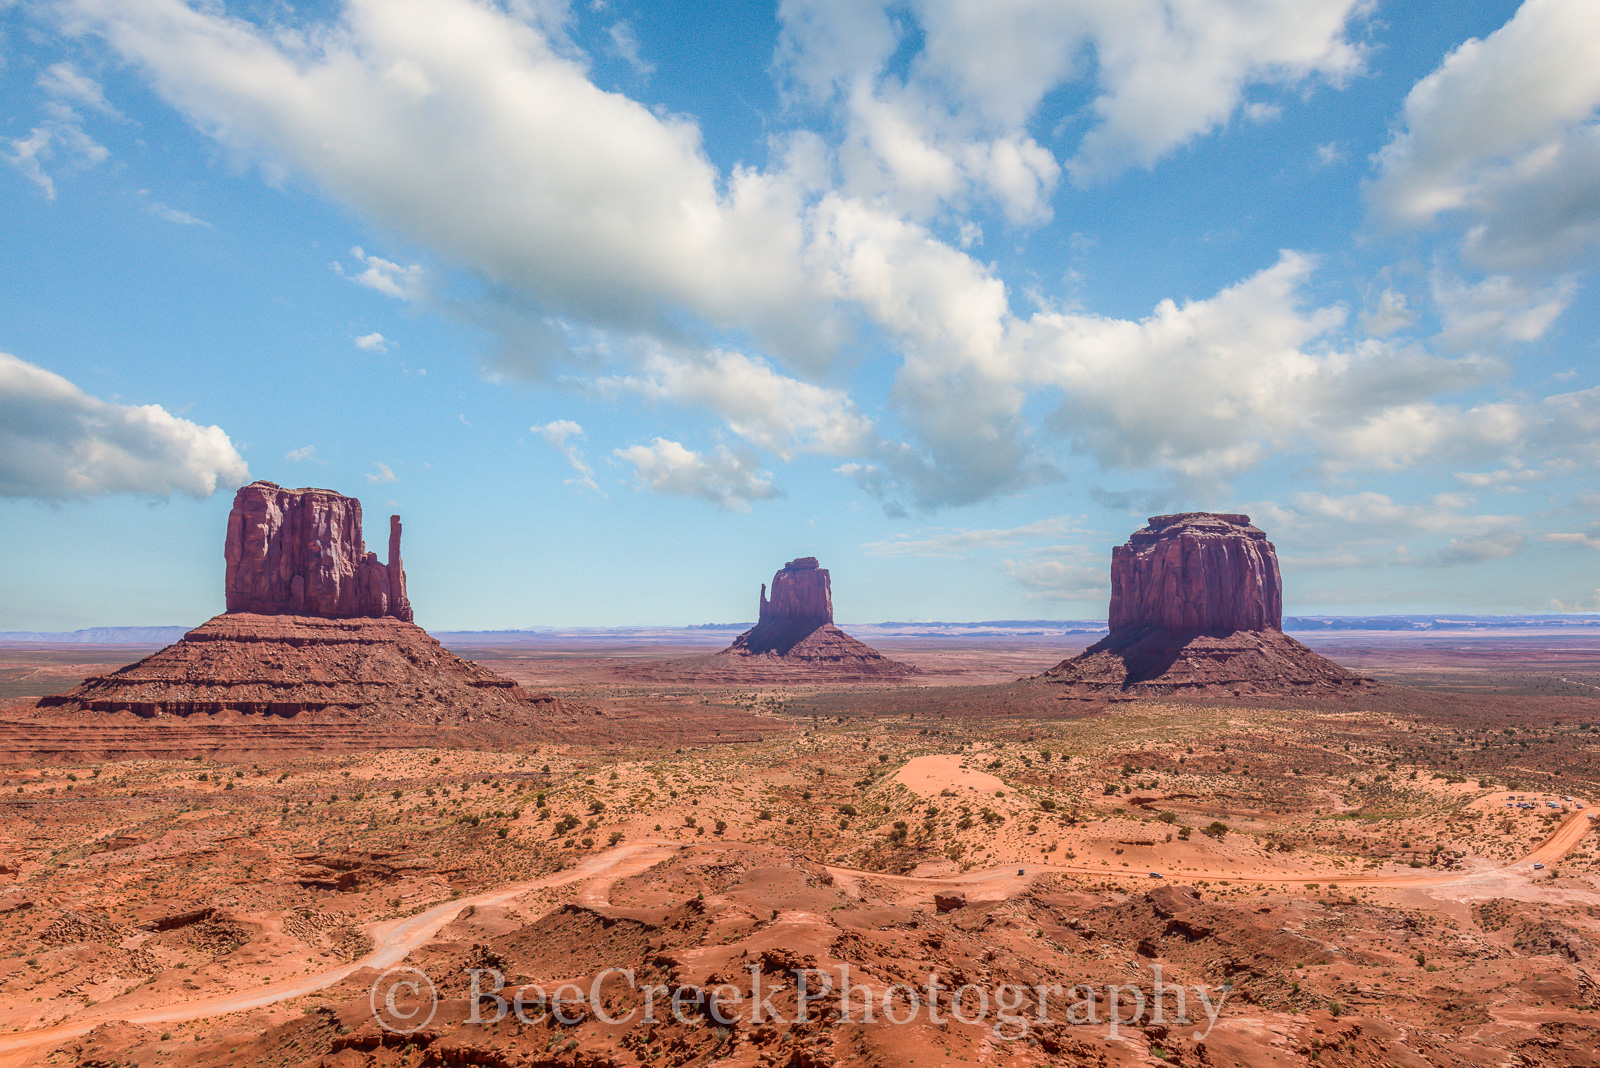 AZ, Arizona, Monument Valley, The Mittens, desert, iron, red rocks, sandstone, shale, southwest, southwestern, photo